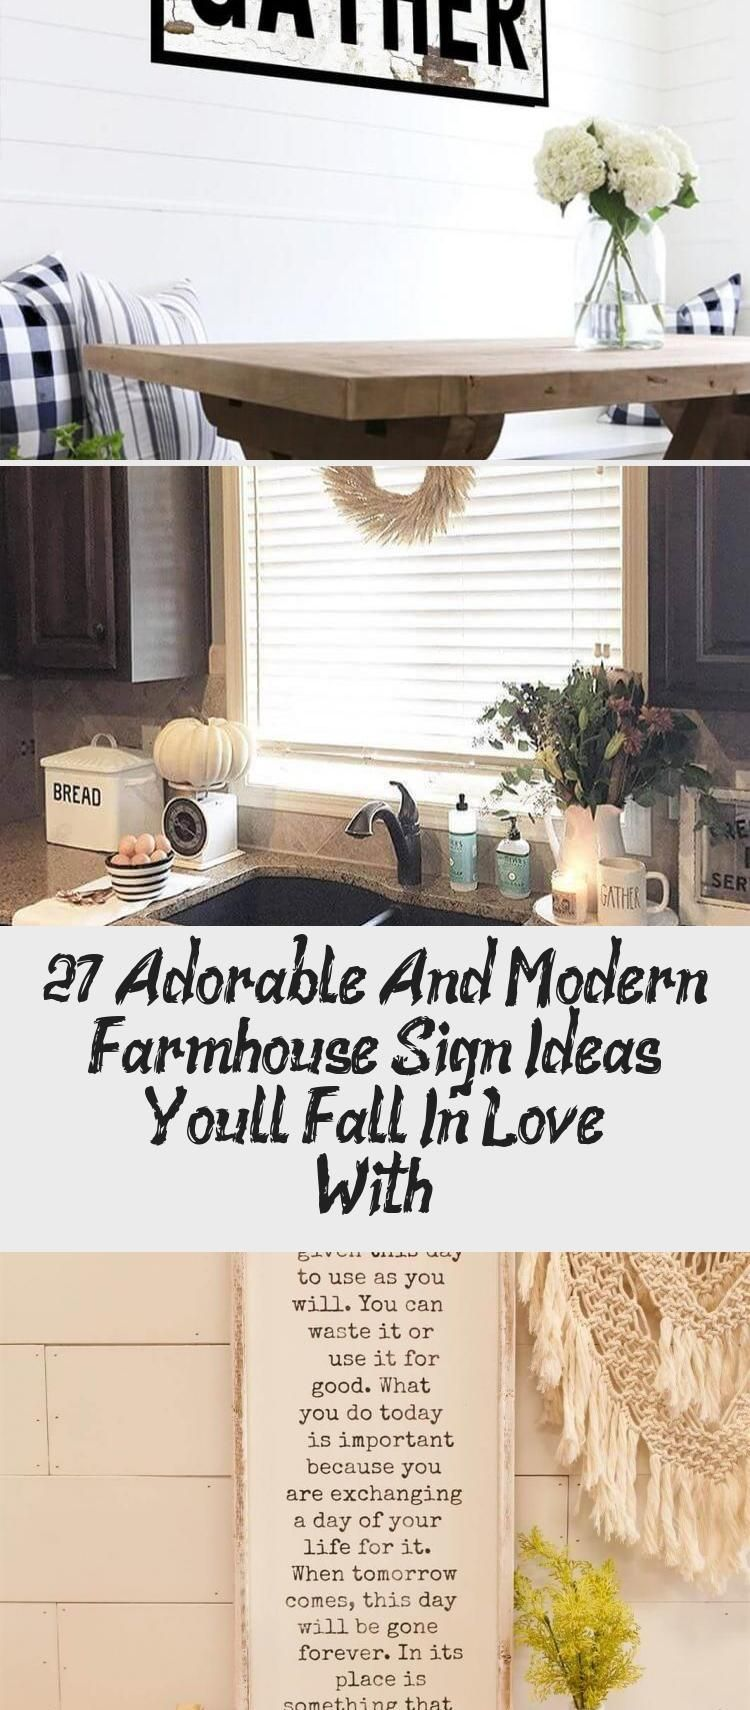 Modern Farmhouse Sign Ideas With Sweet Sayings Housedecorsouthern Housedecorpaint Housedecorblue Housedecorru In 2020 House Decor Rustic Home Decor Farmhouse Signs